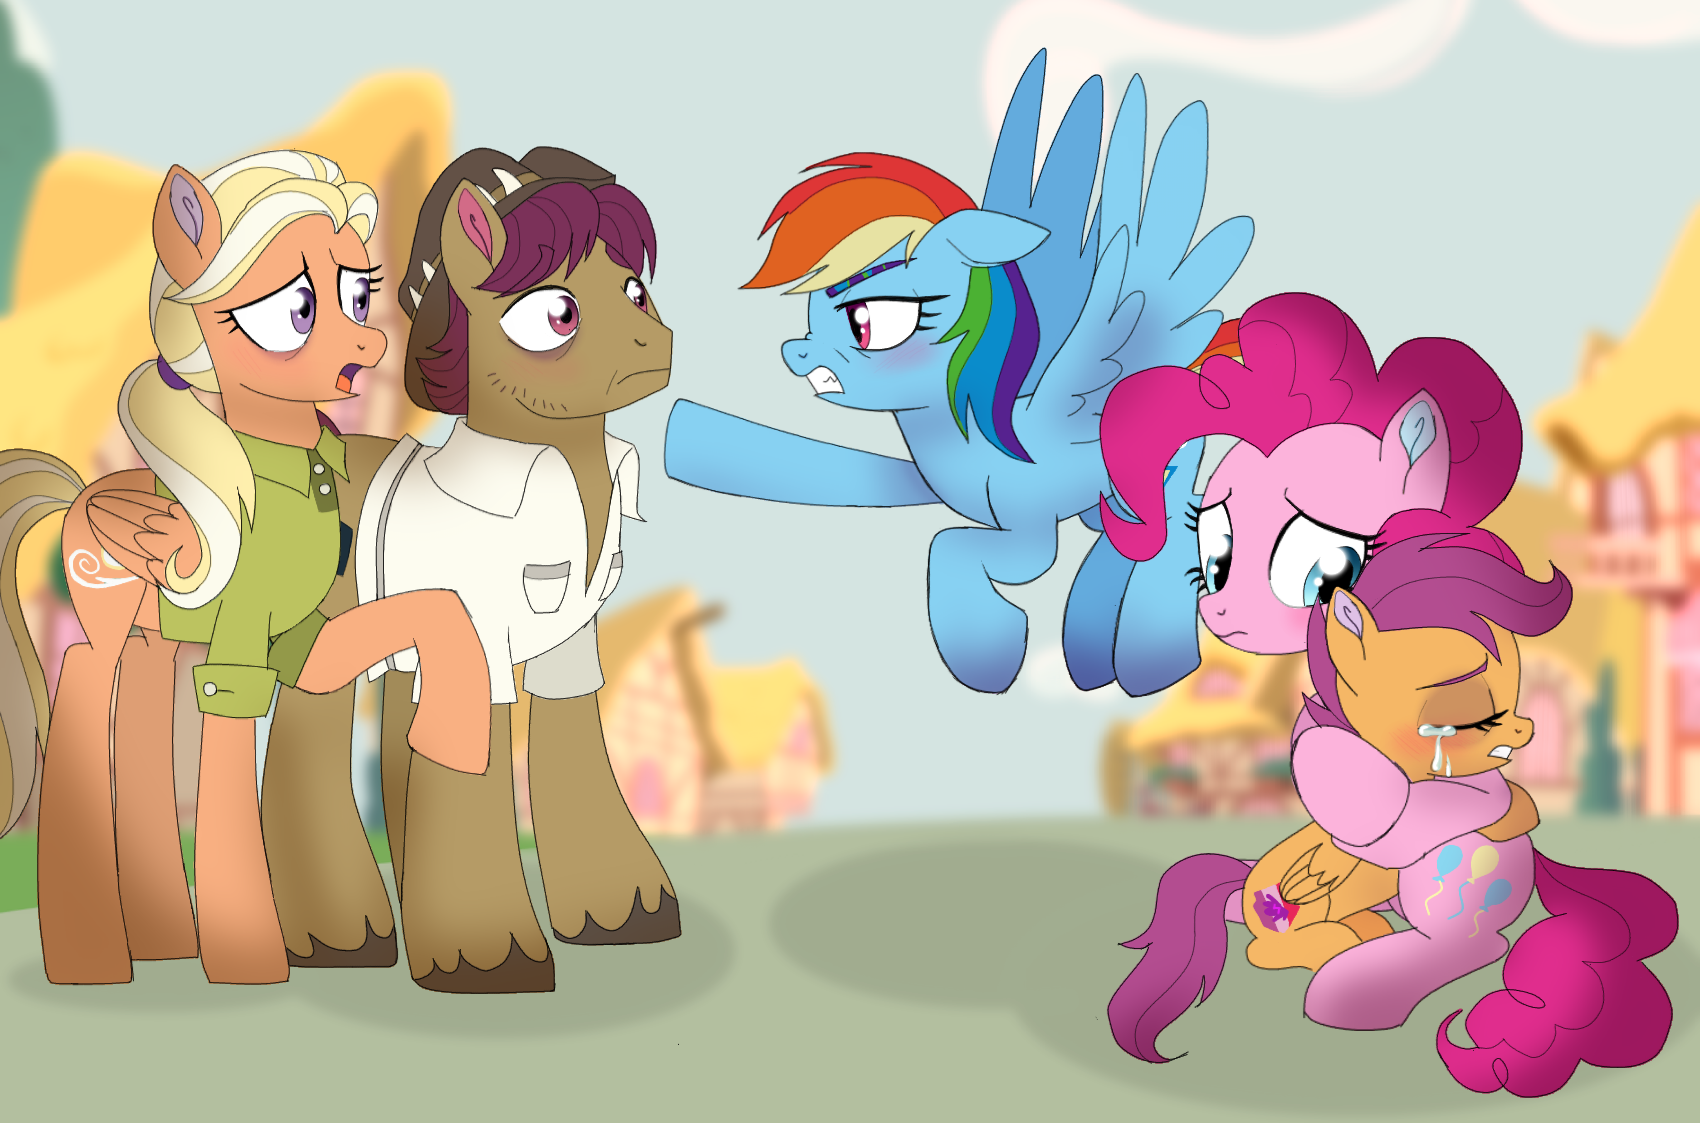 2069680 Angry Artist Unoriginai Bags Under Eyes Bared Teeth Blurry Background Crying Cutie Mark Discussion In The Comments Eyes Closed Female Filly Flying Foal Hug Male Mane Allgood Mare Pinkie Pie Ponyville This makeover features rainbow dash and scootaloo as bliss and bubbles. 2069680 angry artist unoriginai